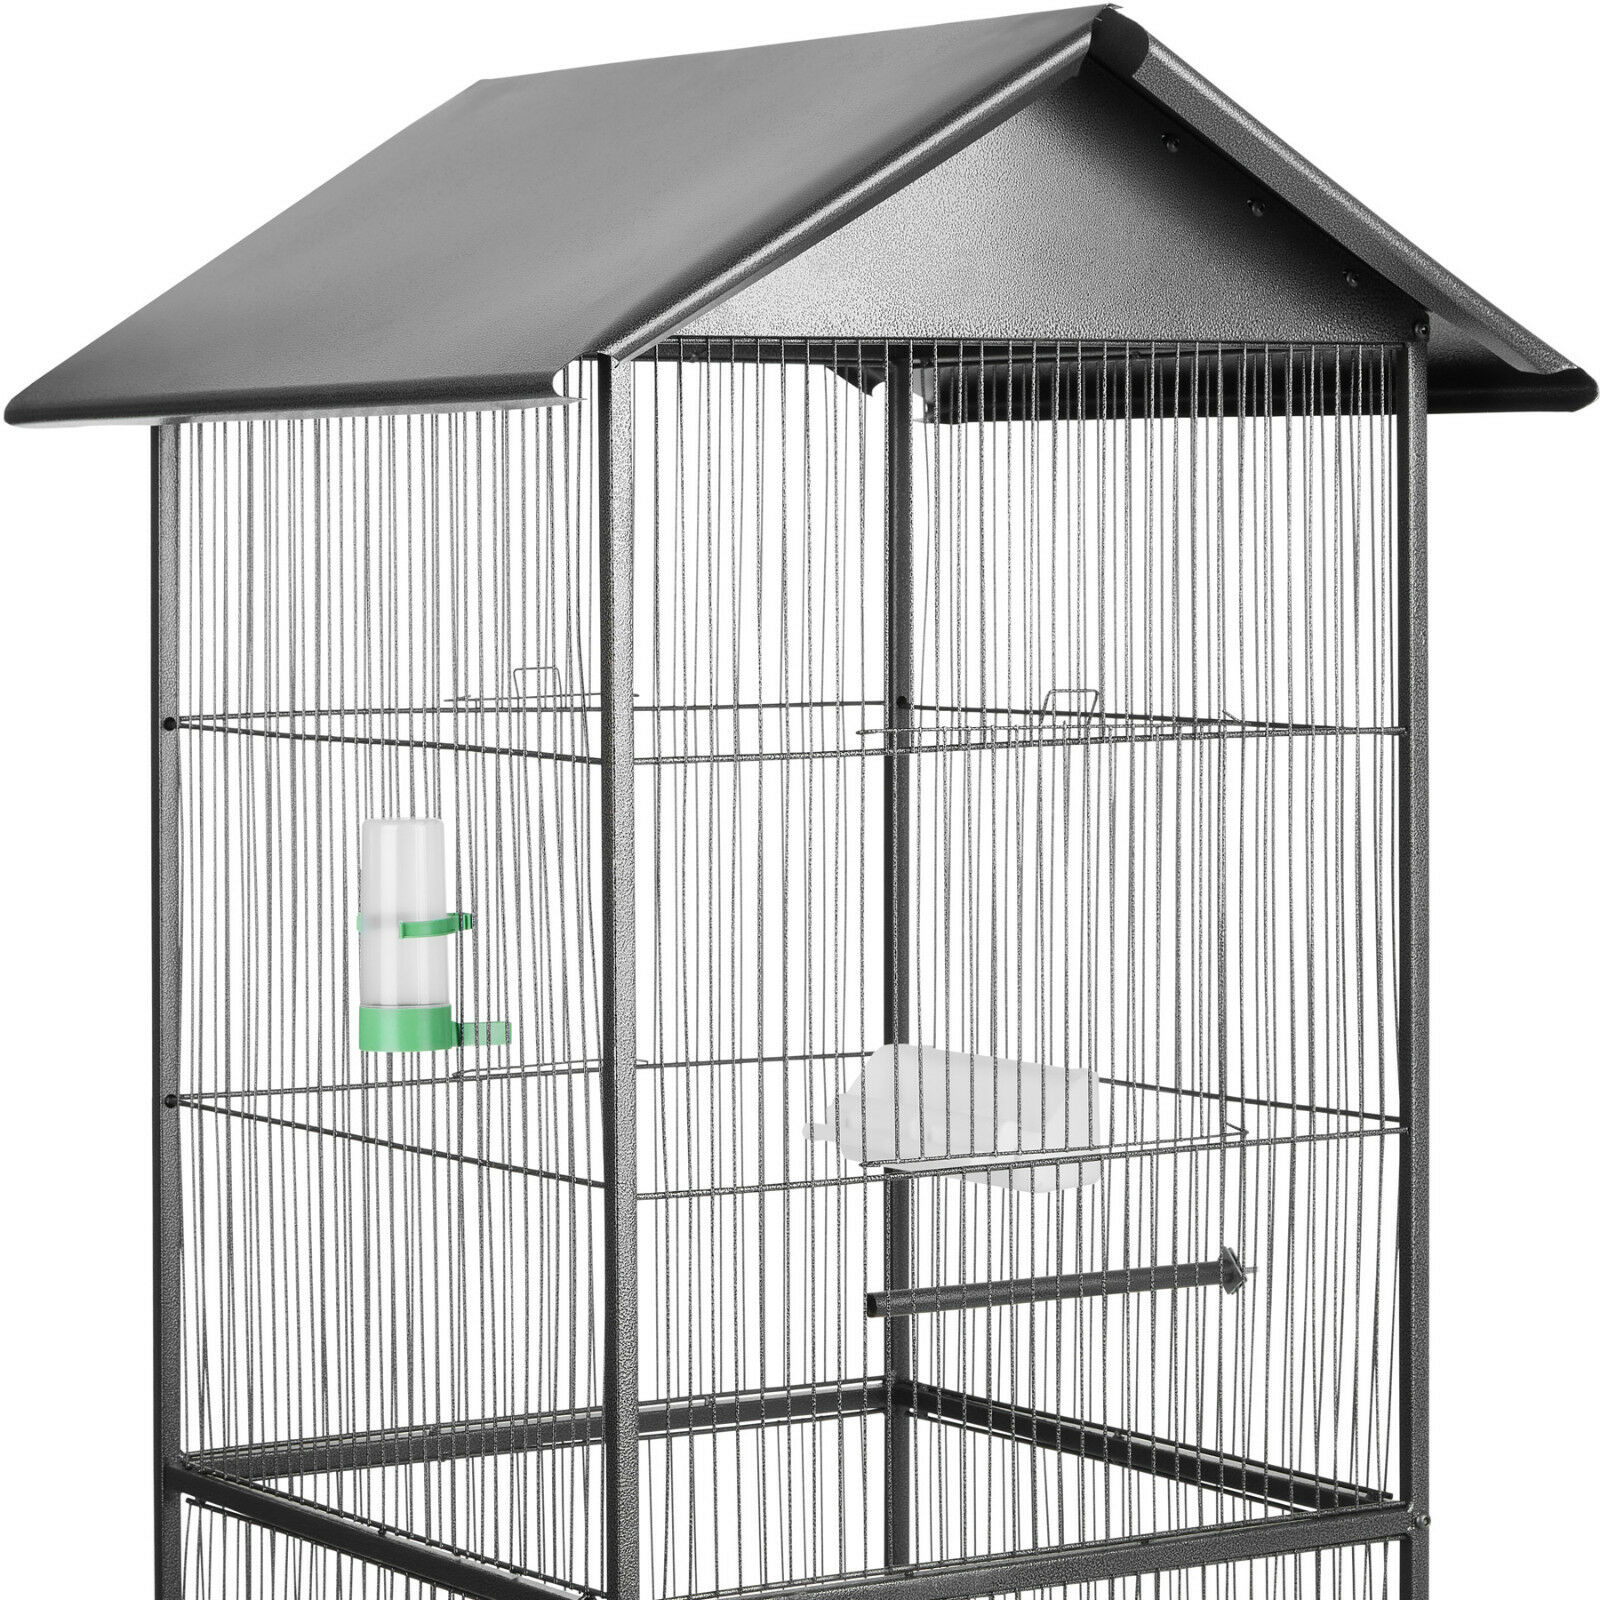 Small Bird Cage White Pet Supplies Steady Pet Ting Daffodil Bird Cage For Finch Canary Budgie